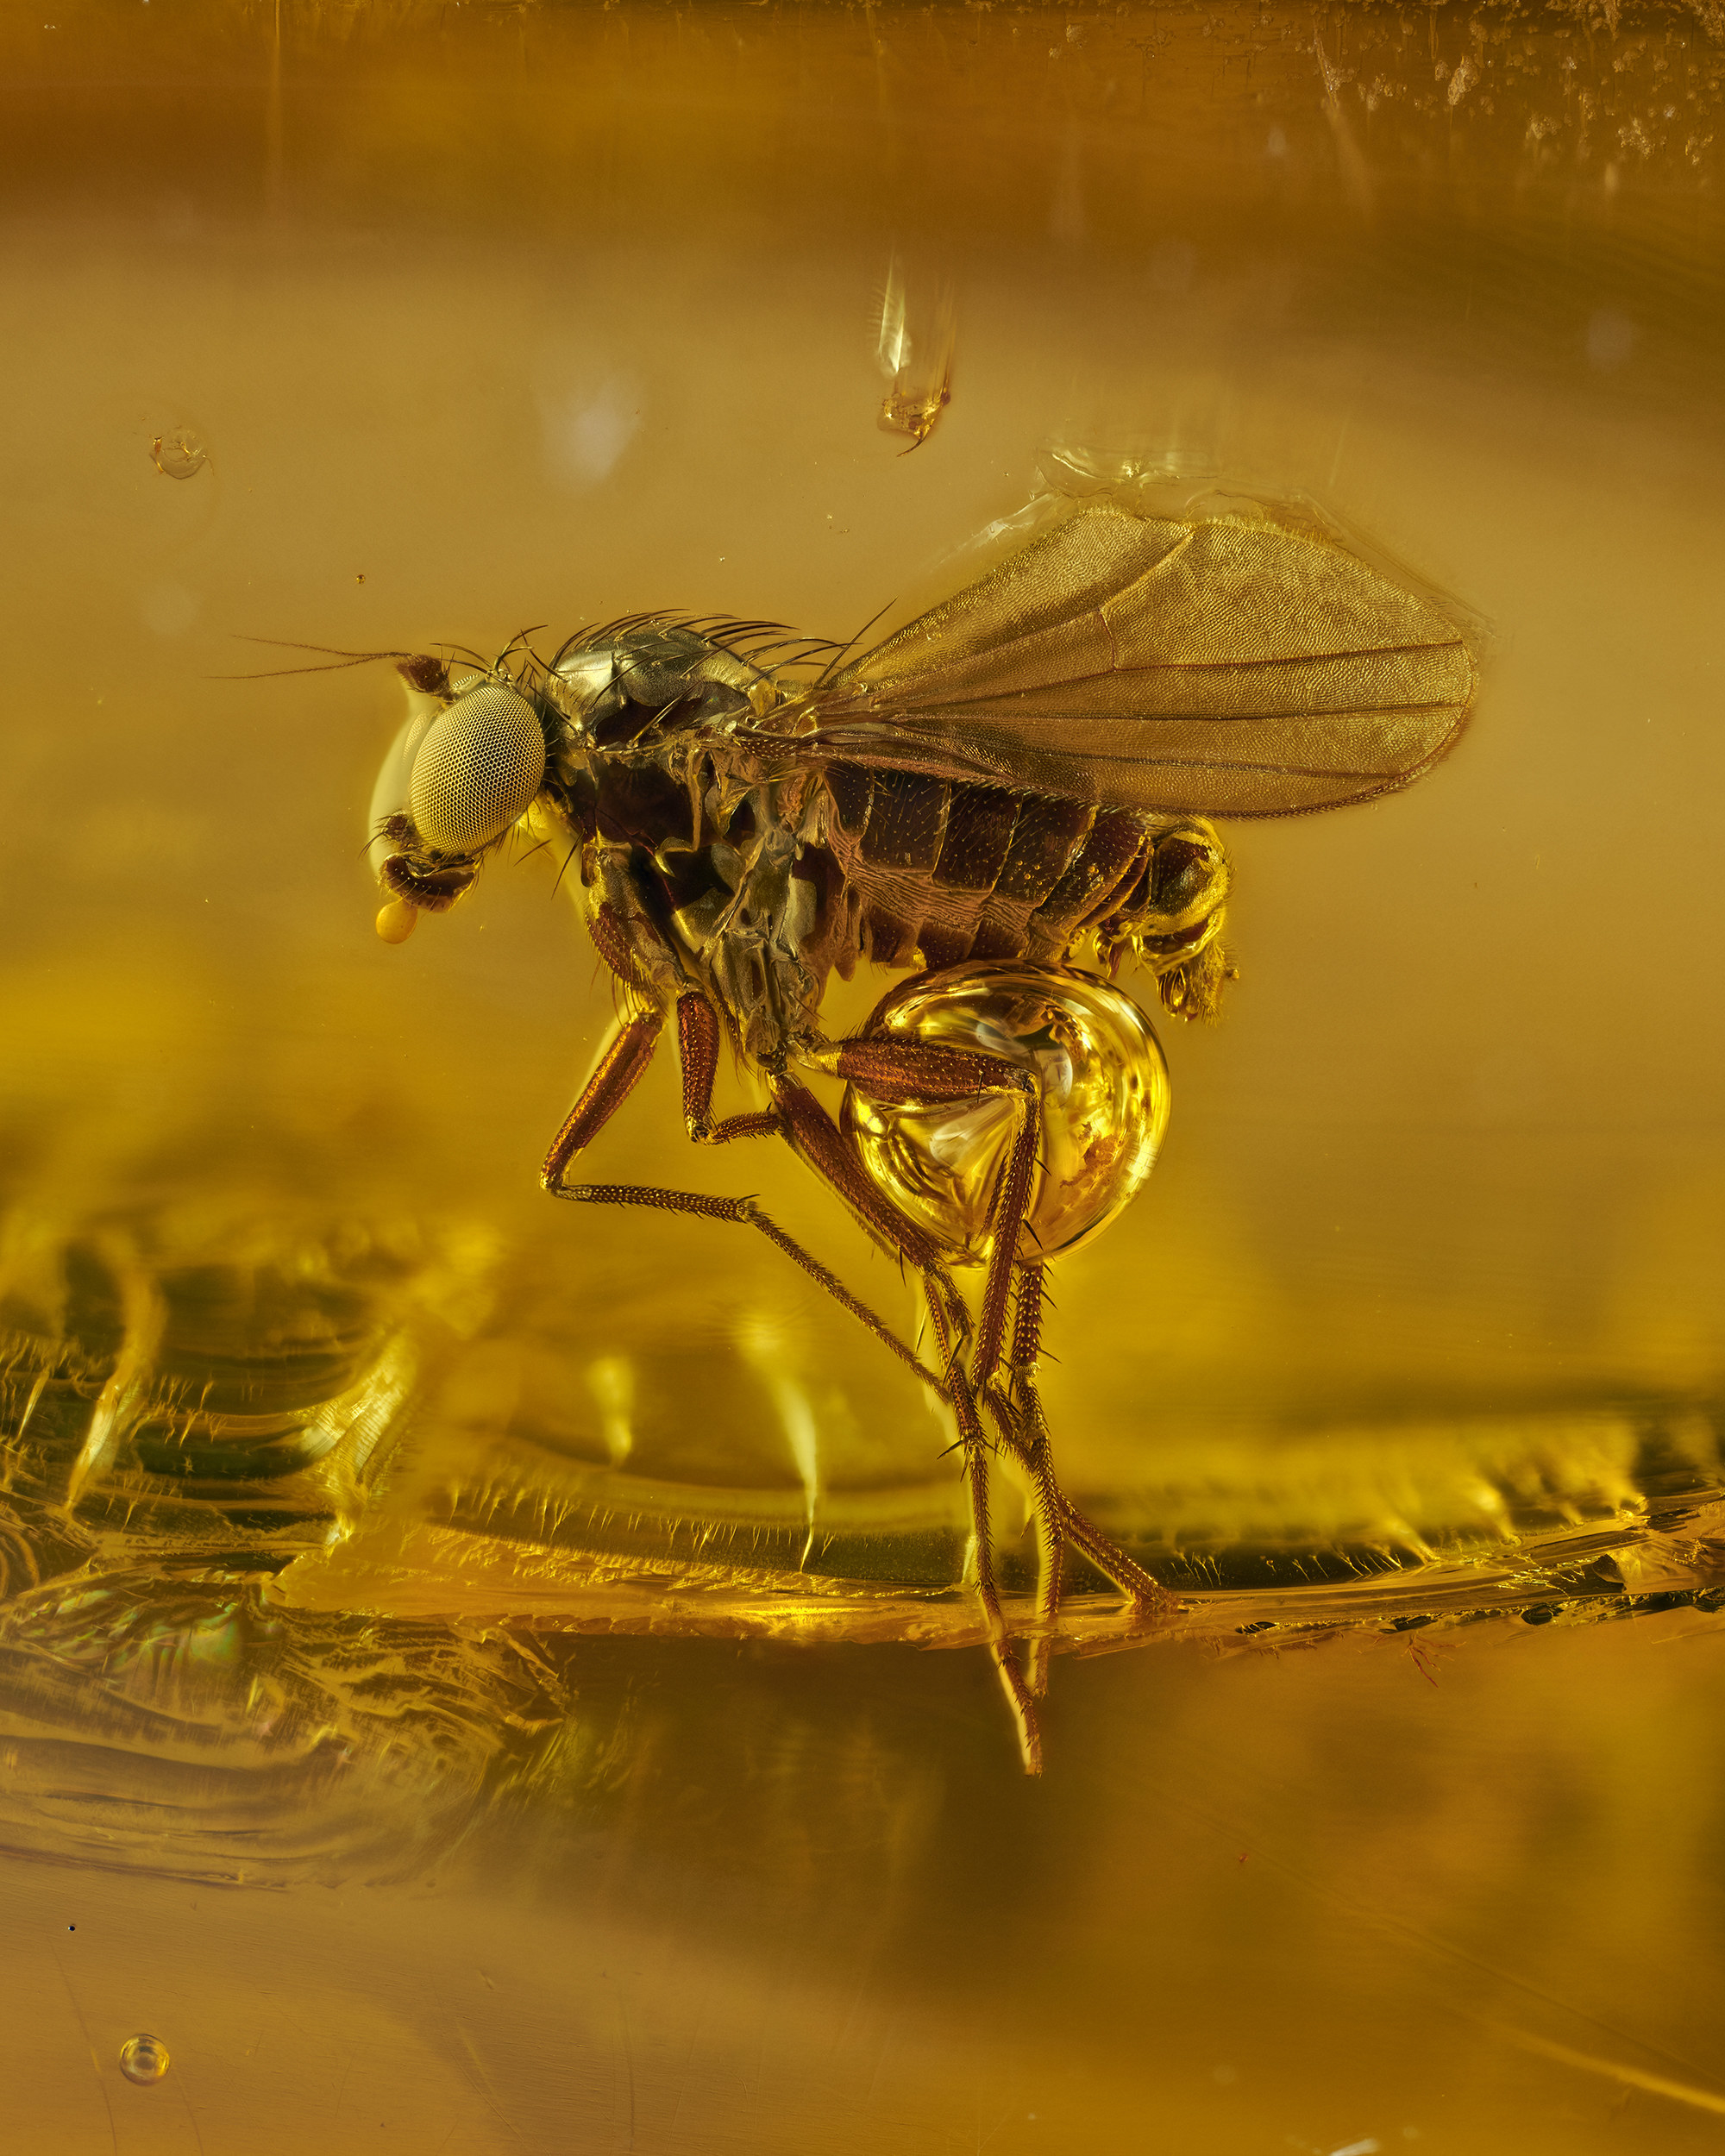 A gnat preserved in amber, hovering in the frame,  magnified many times